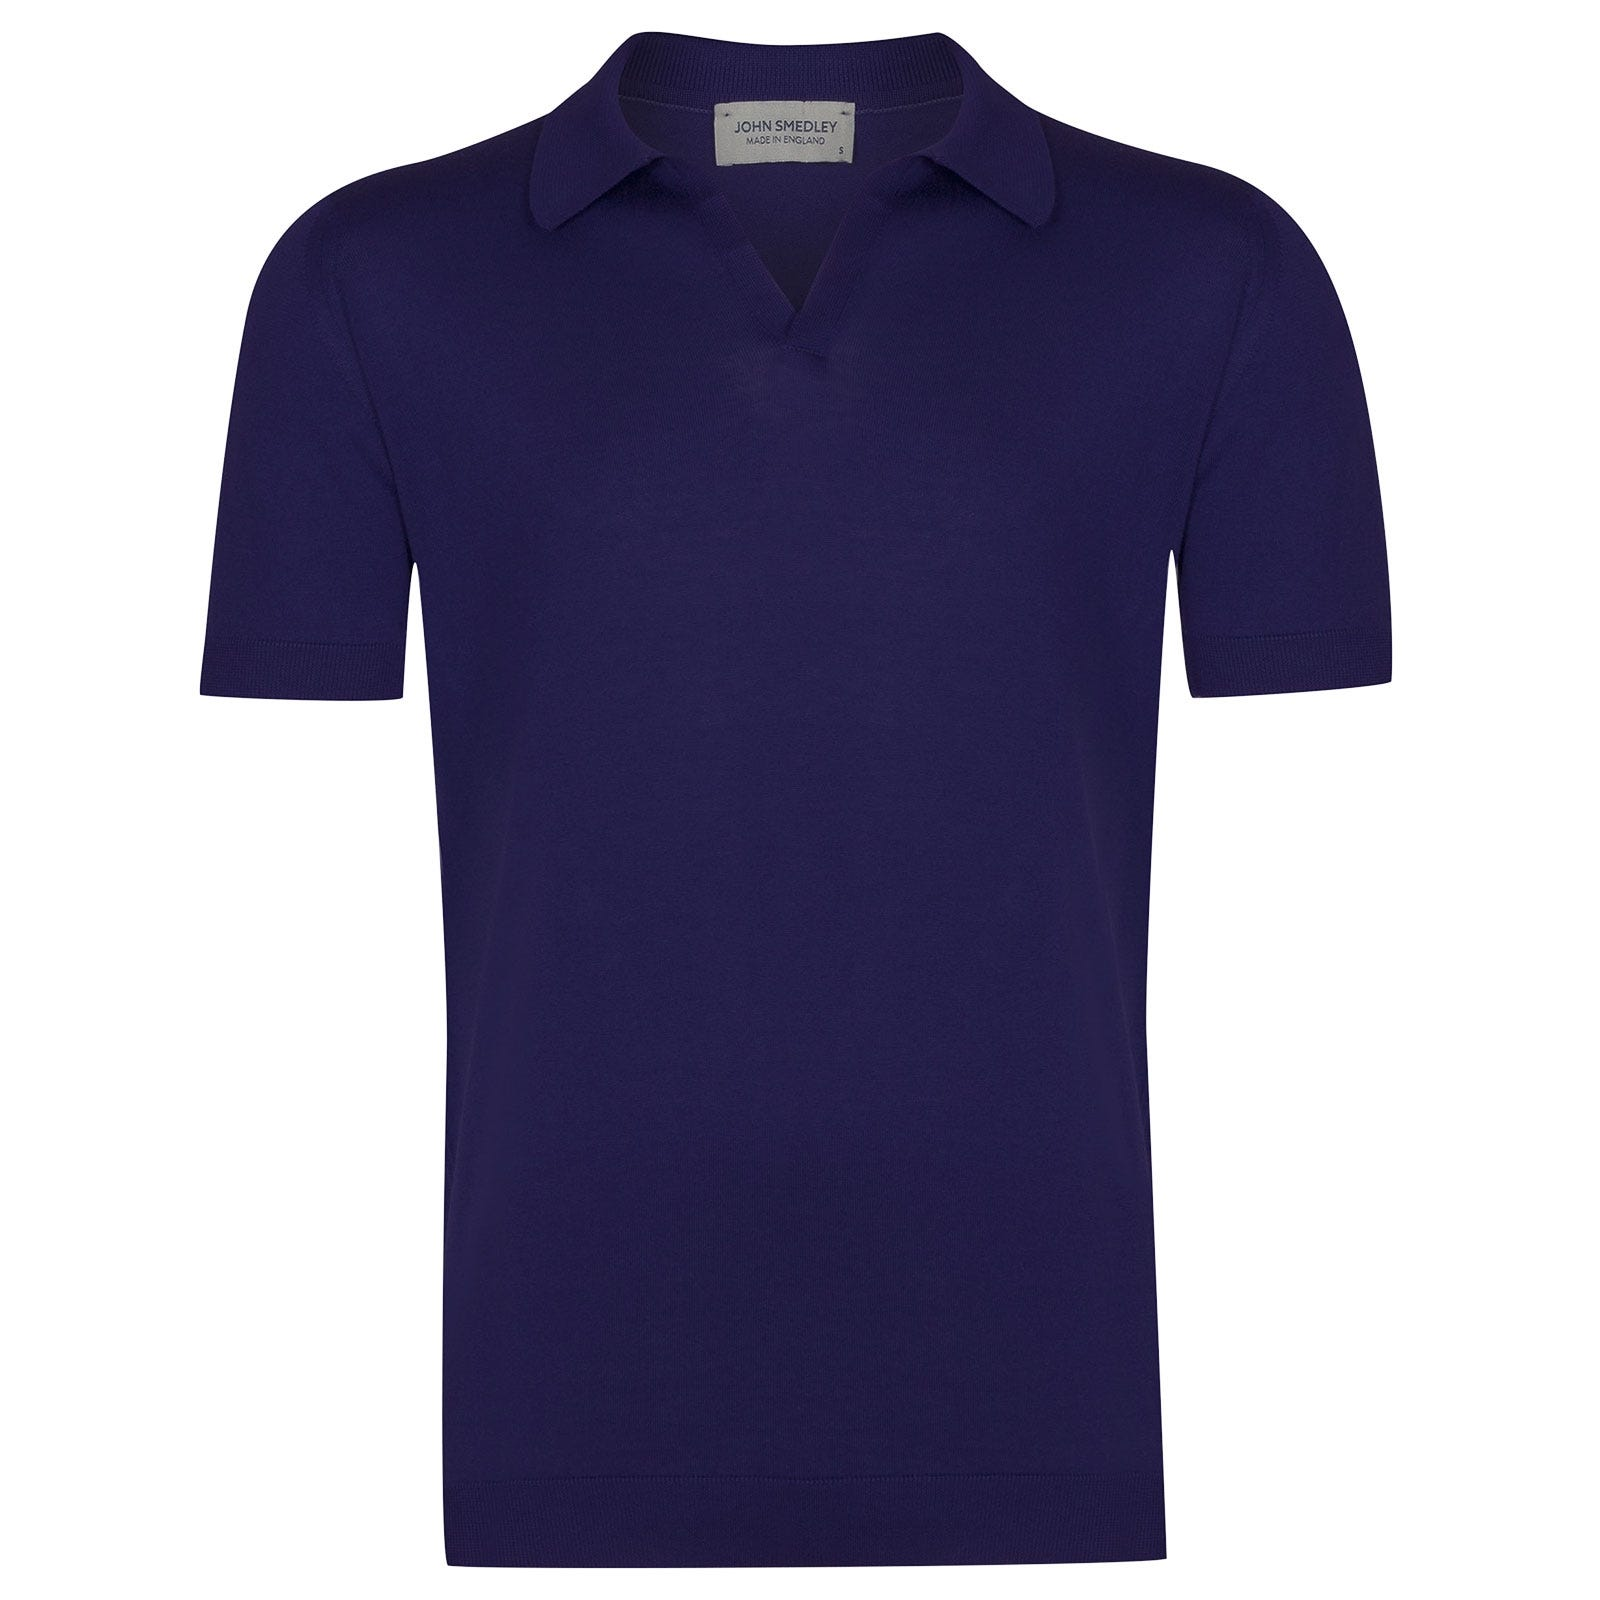 John Smedley Noah Sea Island Cotton Shirt in Serge Blue-S